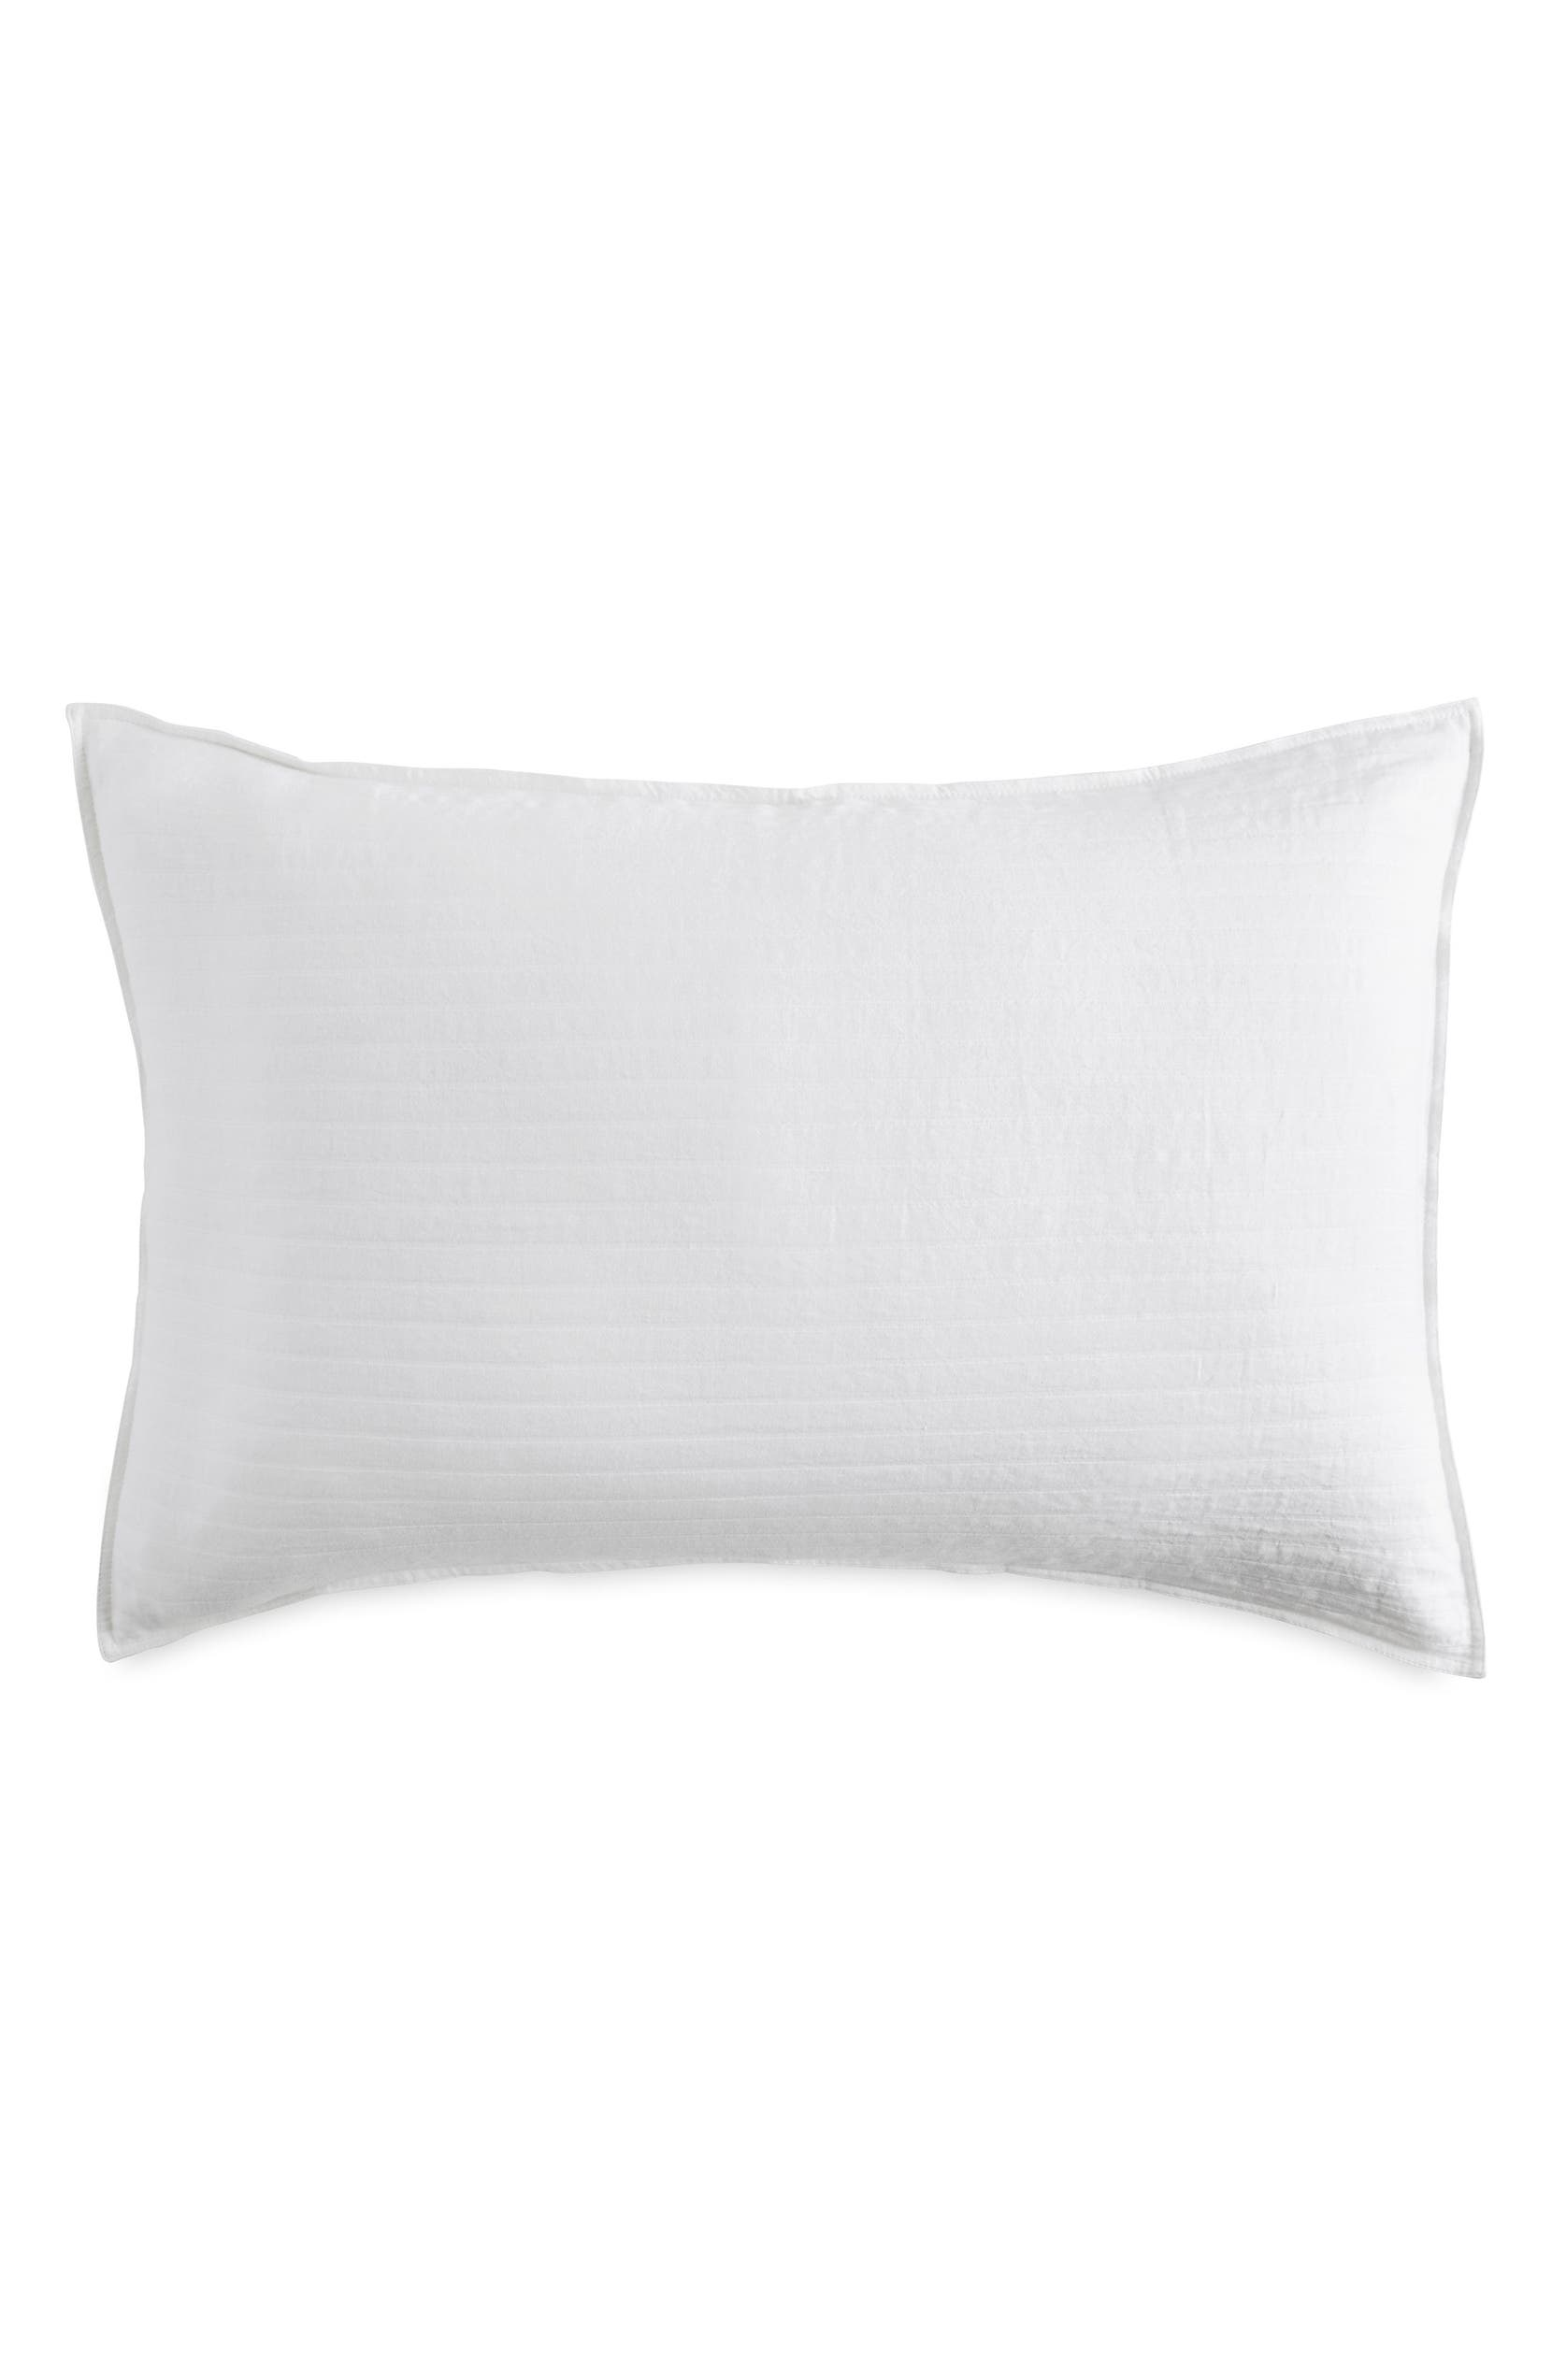 Dkny Pure Comfy White Pillow Sham Nordstrom